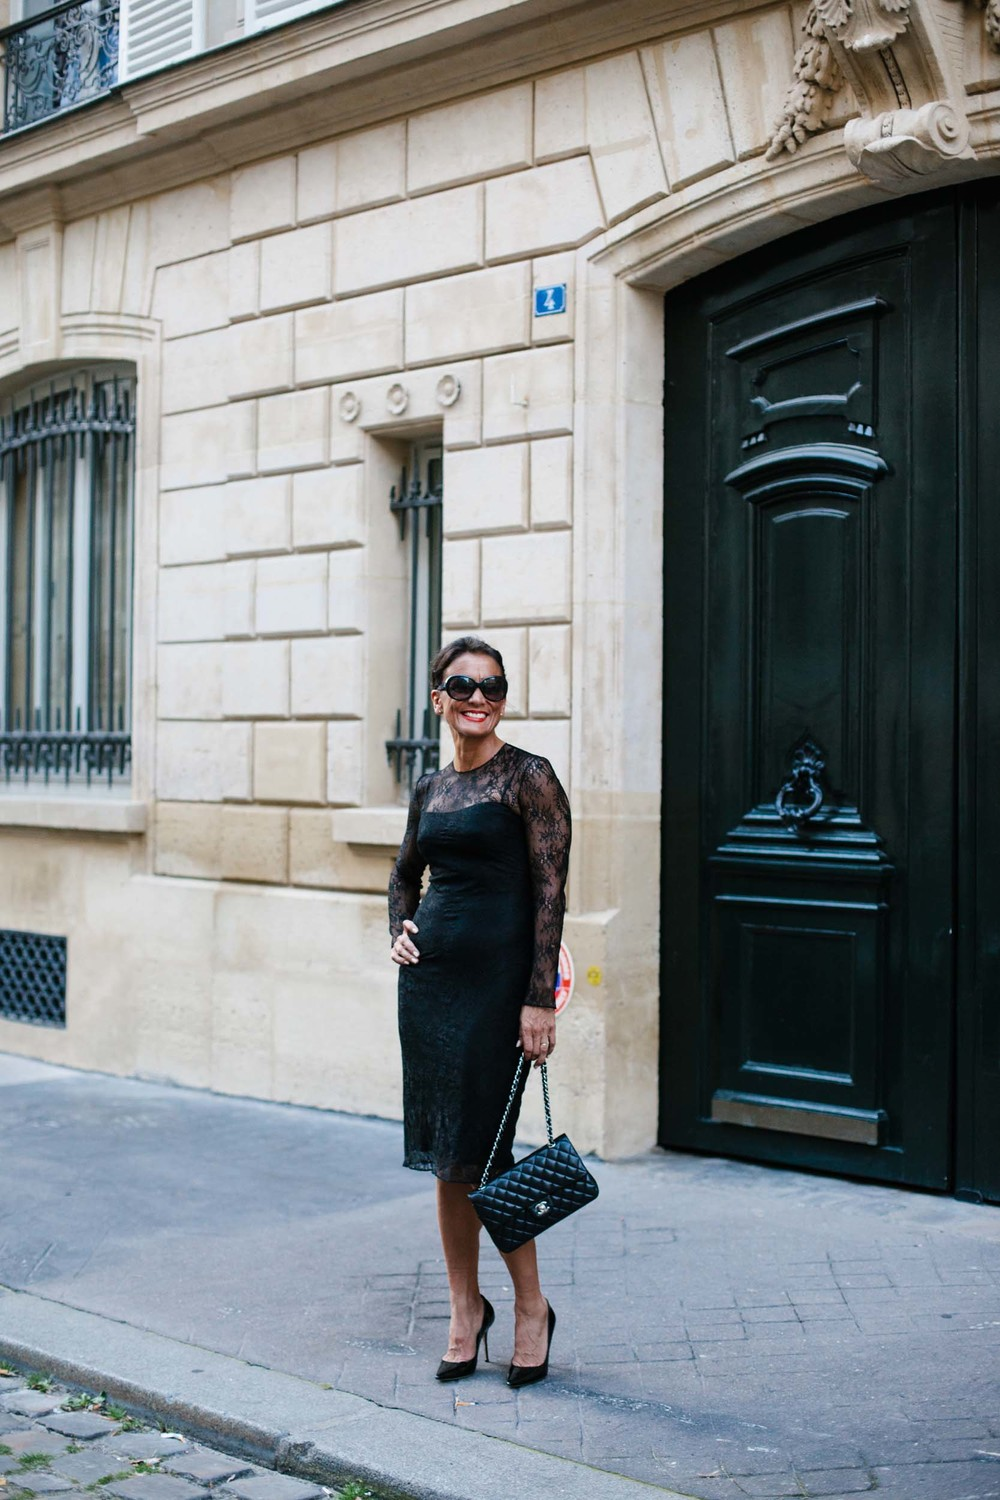 Paris fashion shopping vacation photographer